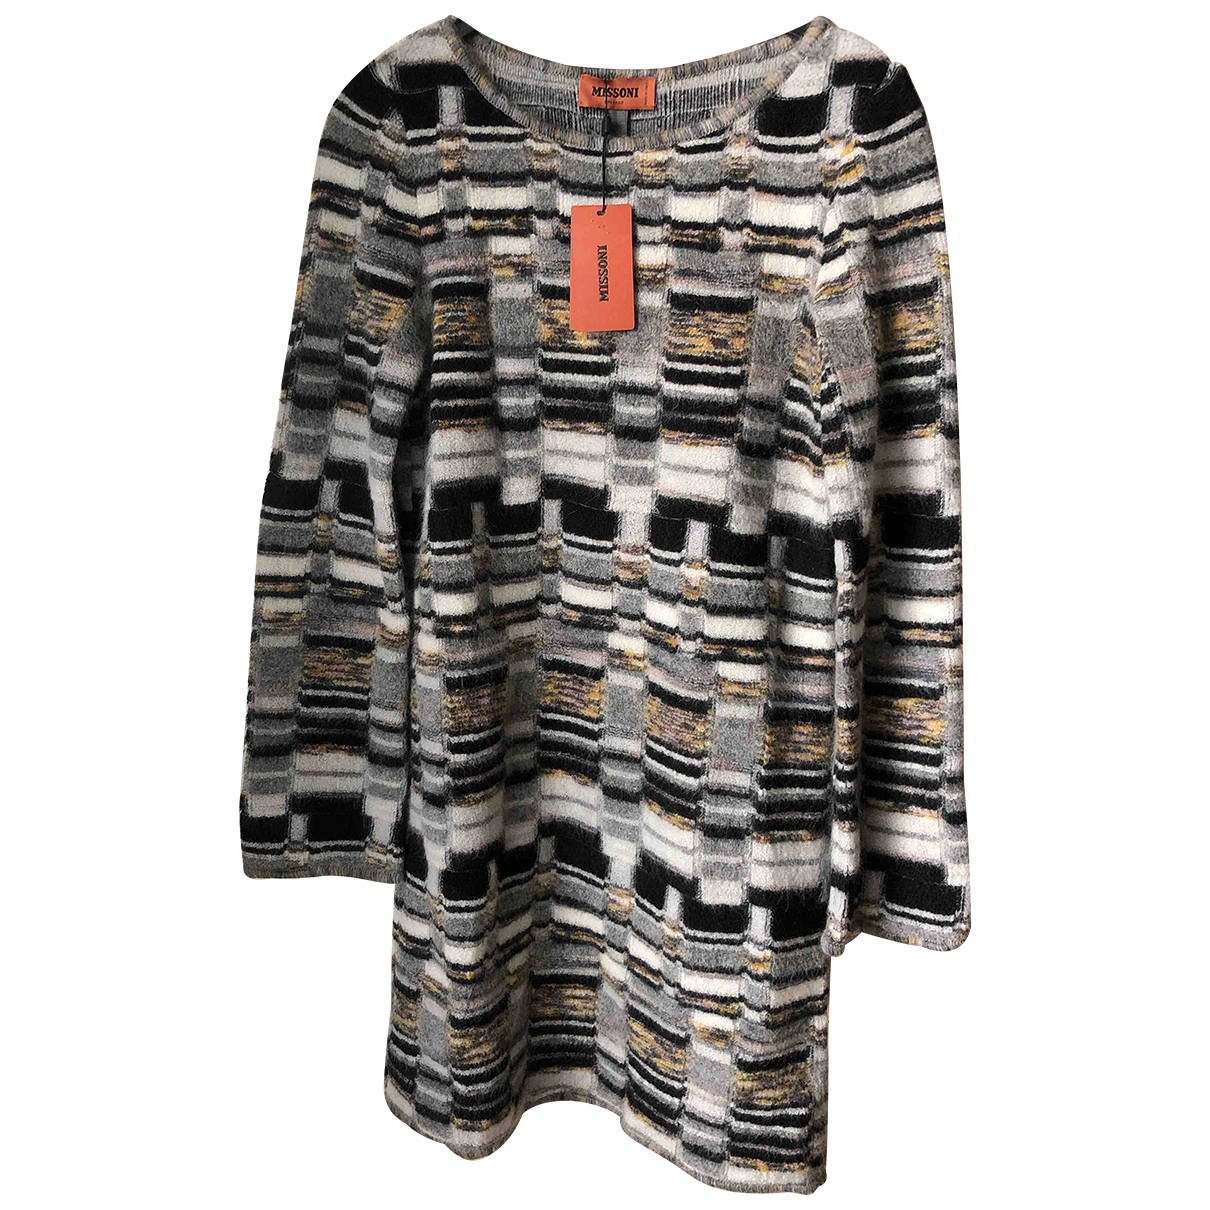 Missoni N Multicolour Wool dress for Women 40 IT